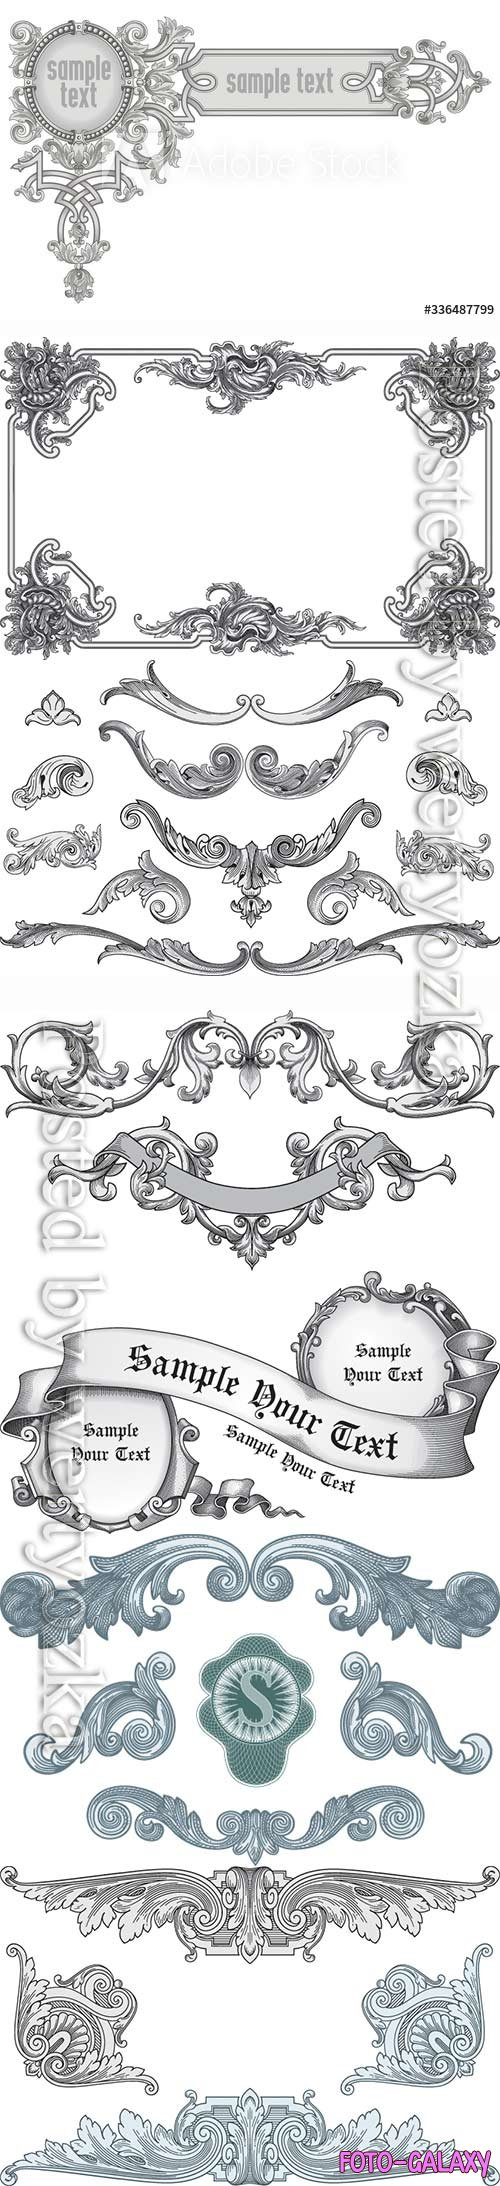 Vintage frame corner, design element vector